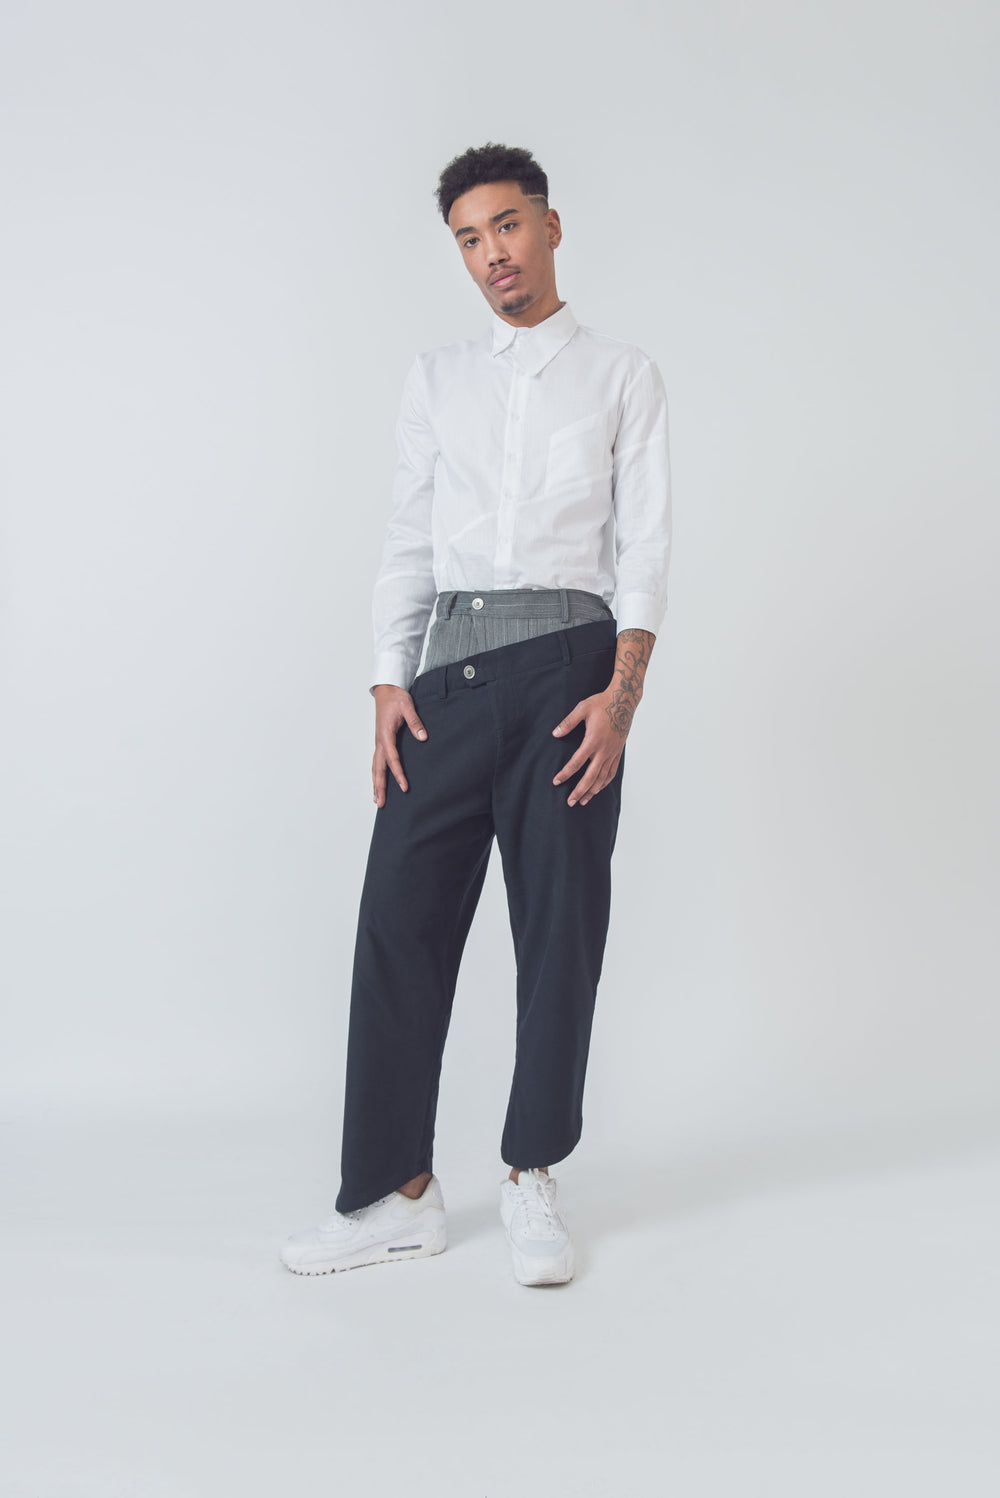 M.B. Smoke Trousers // Unisex